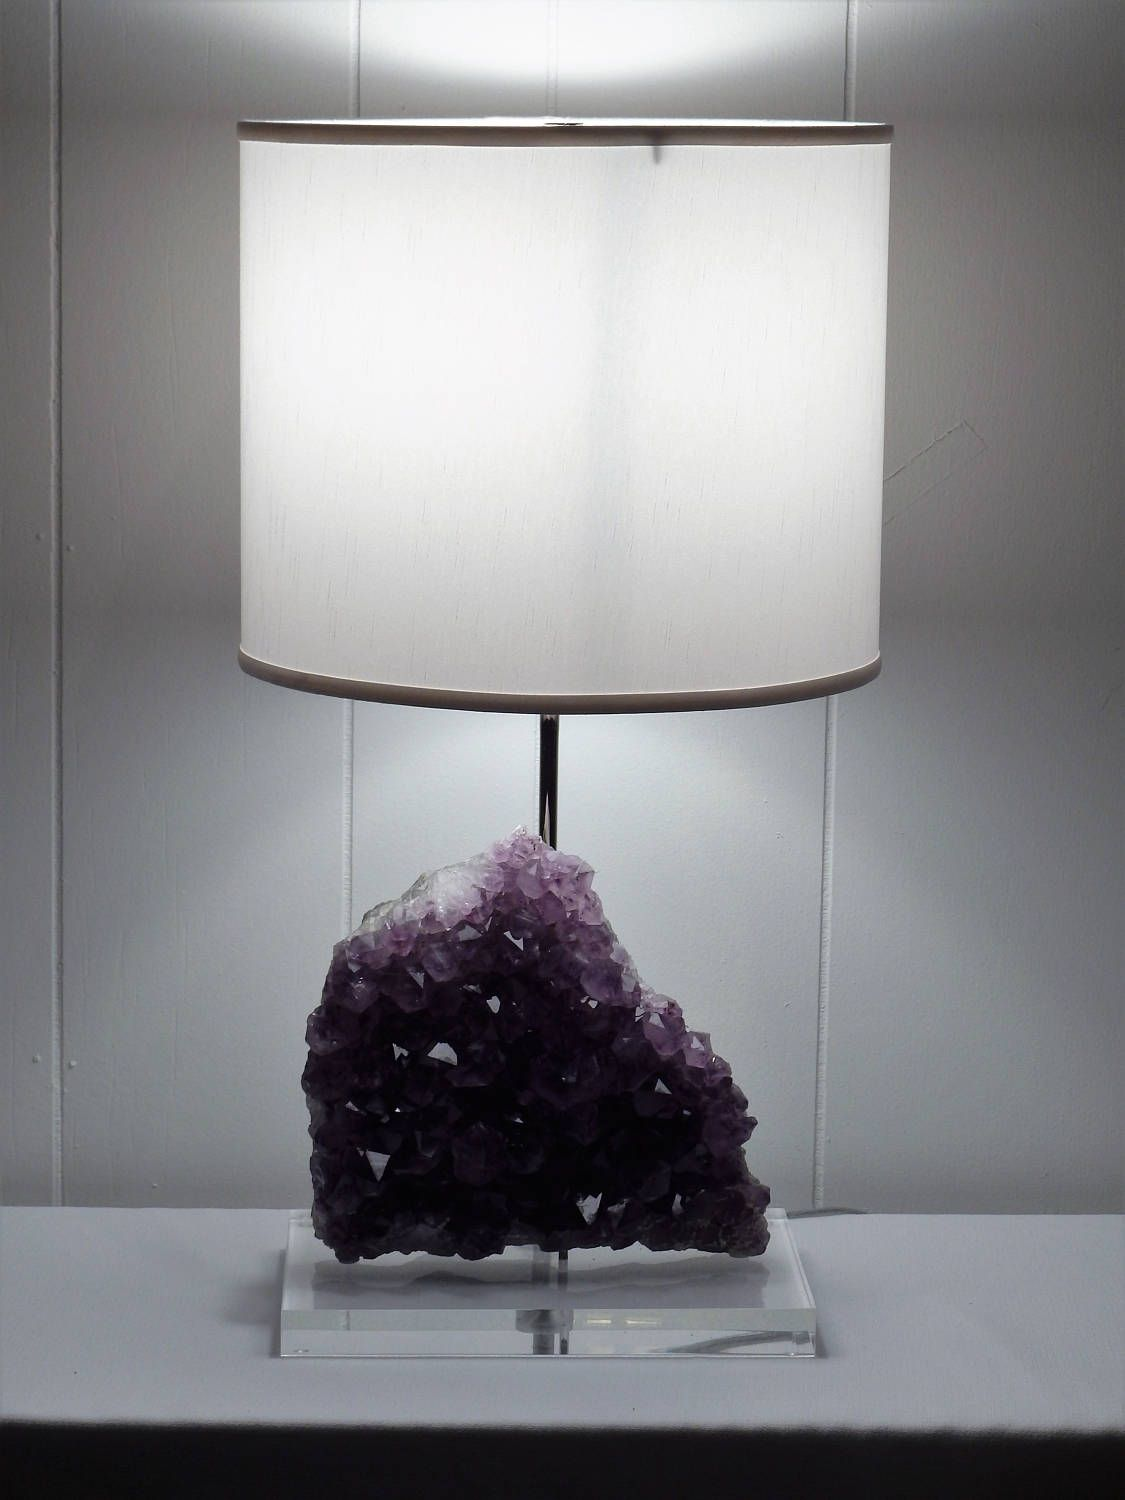 Amethyst rock crystal table lamp jessica crystals lamp amethyst rock crystal table lamp jessica crystals lampgemstone lampmineral lampgeode lamp mozeypictures Gallery